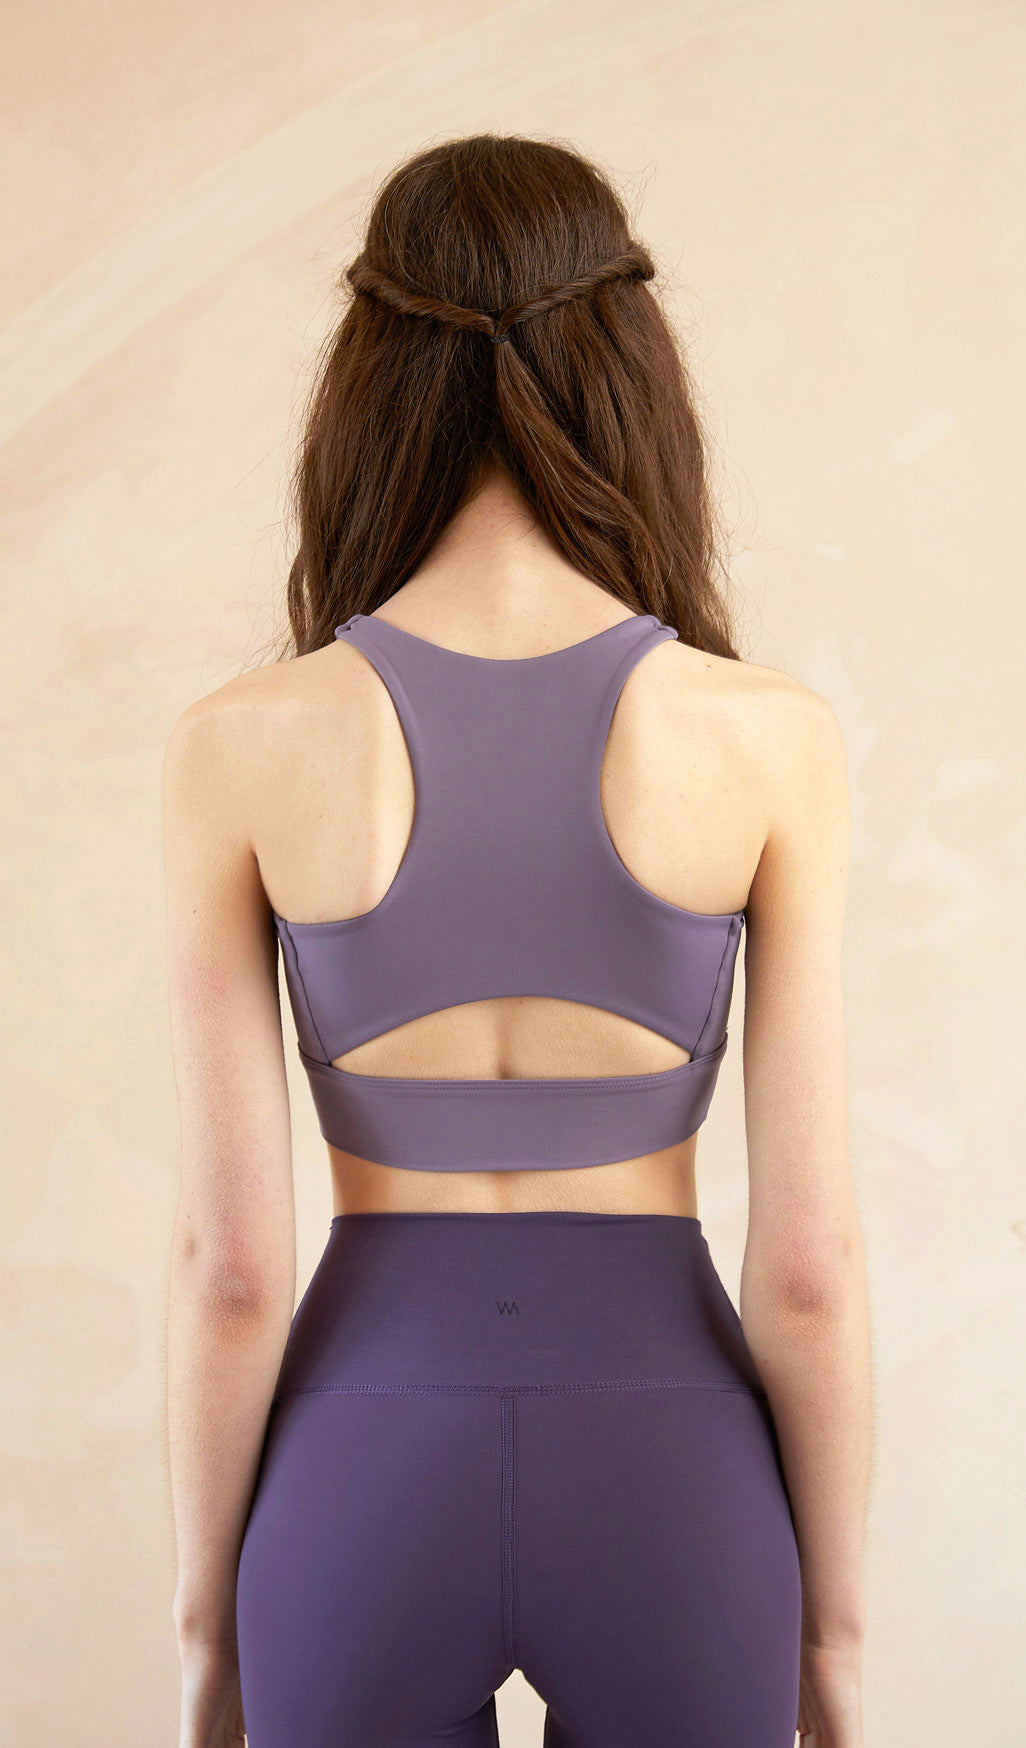 Yoga Top Josie - Light Purple